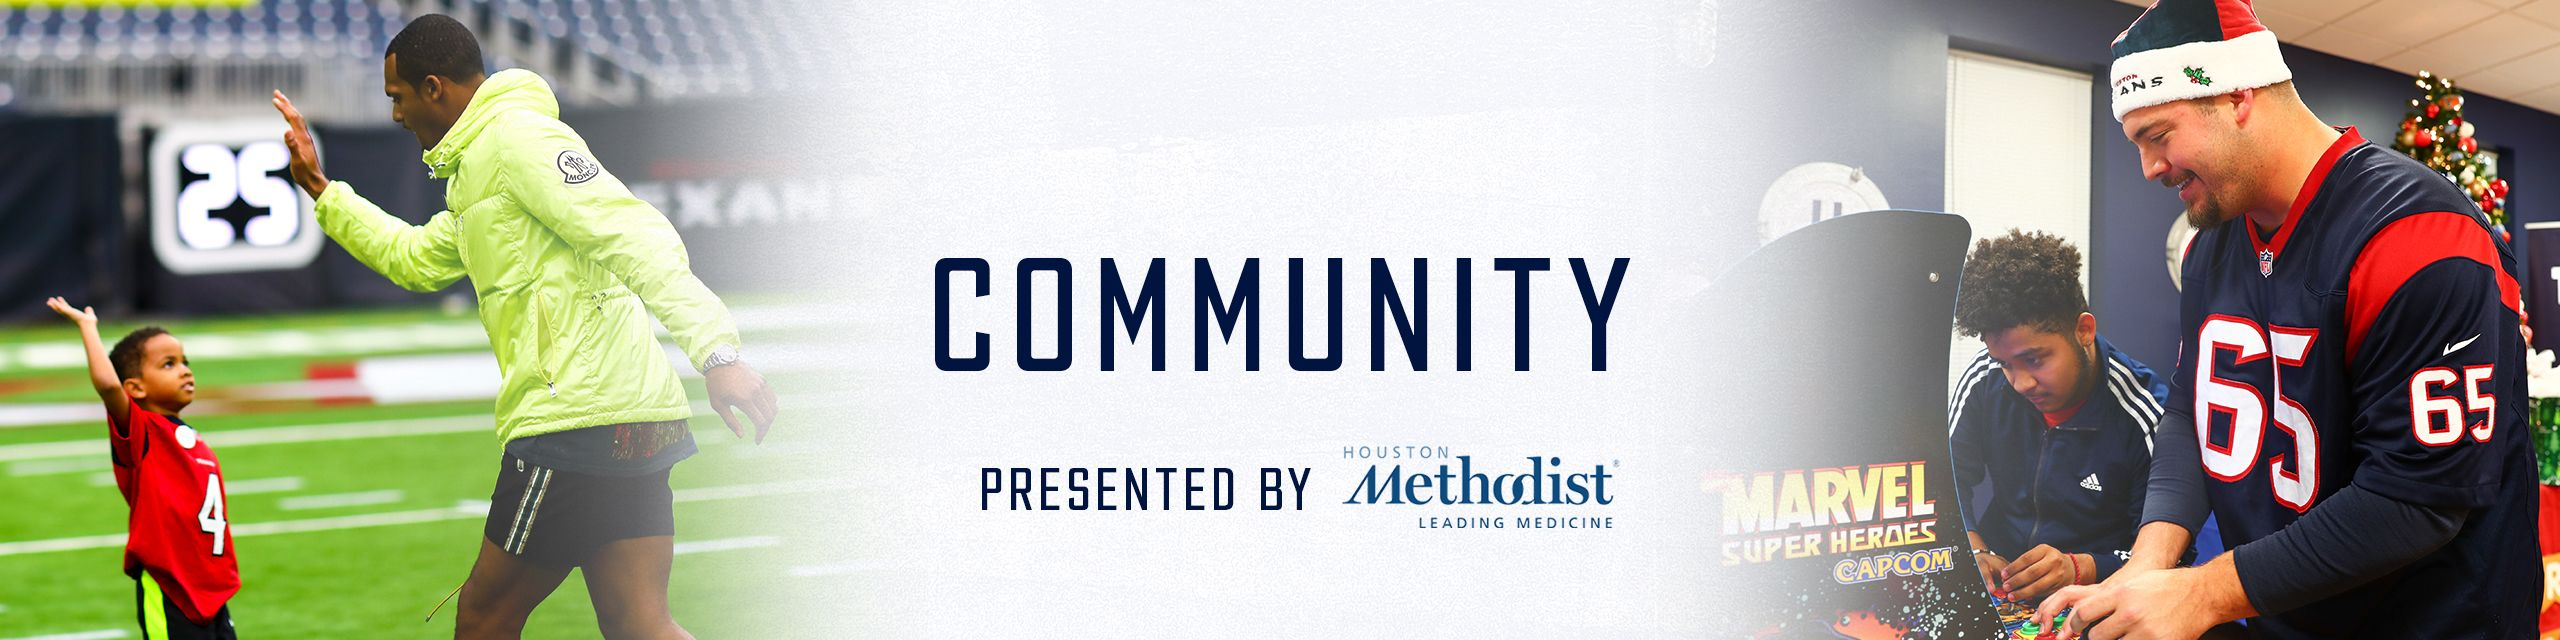 Community presented by Houston Methodist